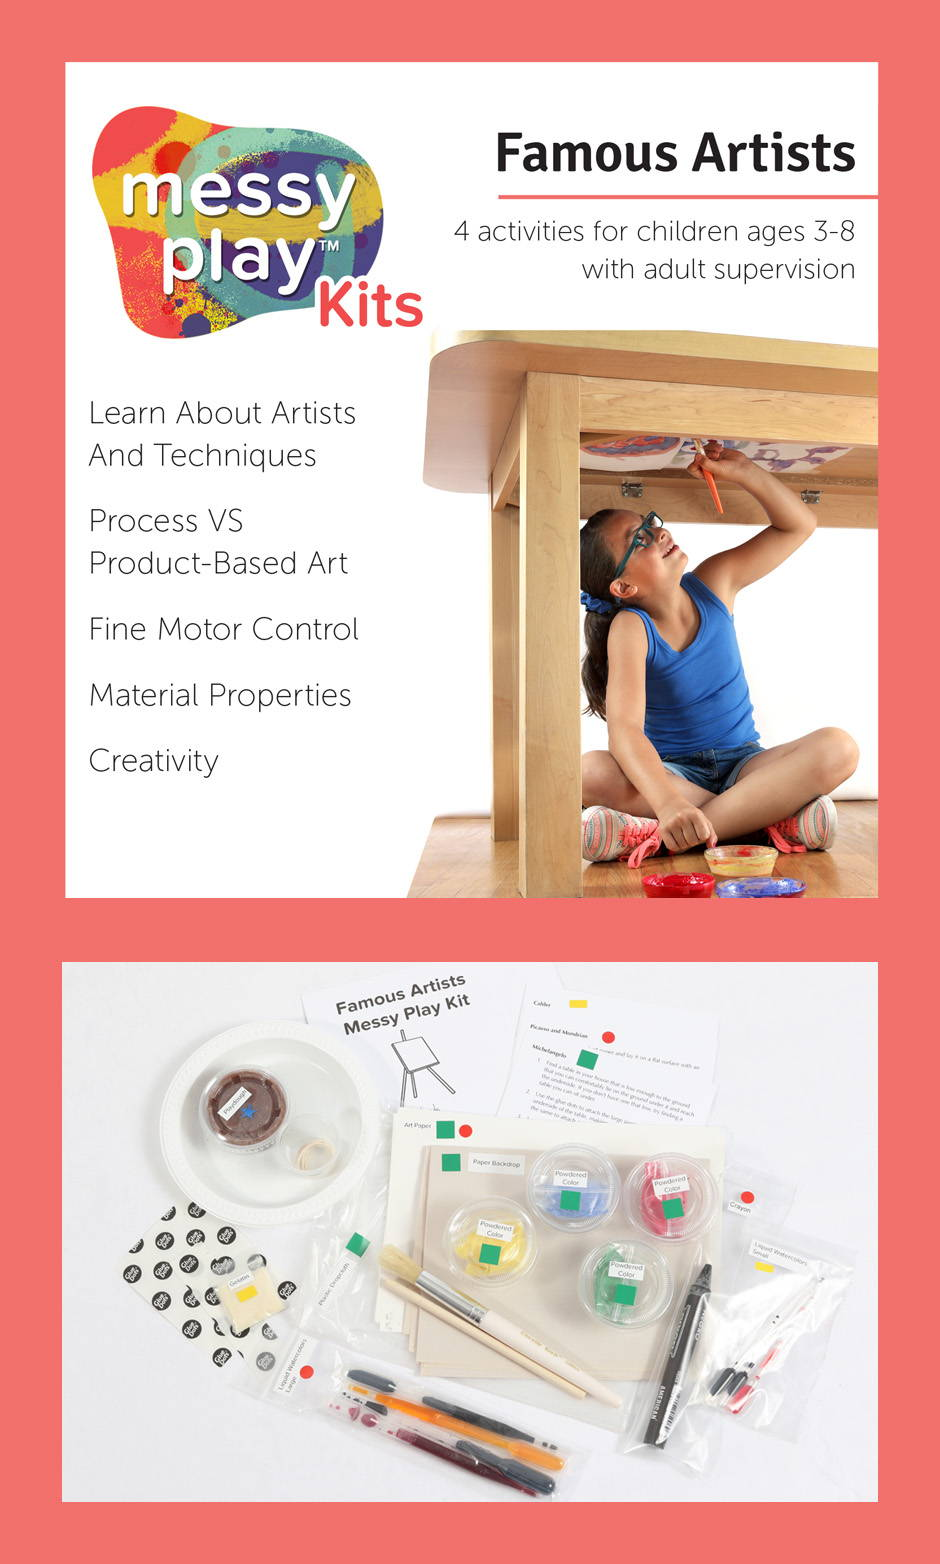 Famous Artists Messy Play Kit contains 4 activities that teach about artists and techniques, process vs product-based art, fine motor control, material properties, and creativity